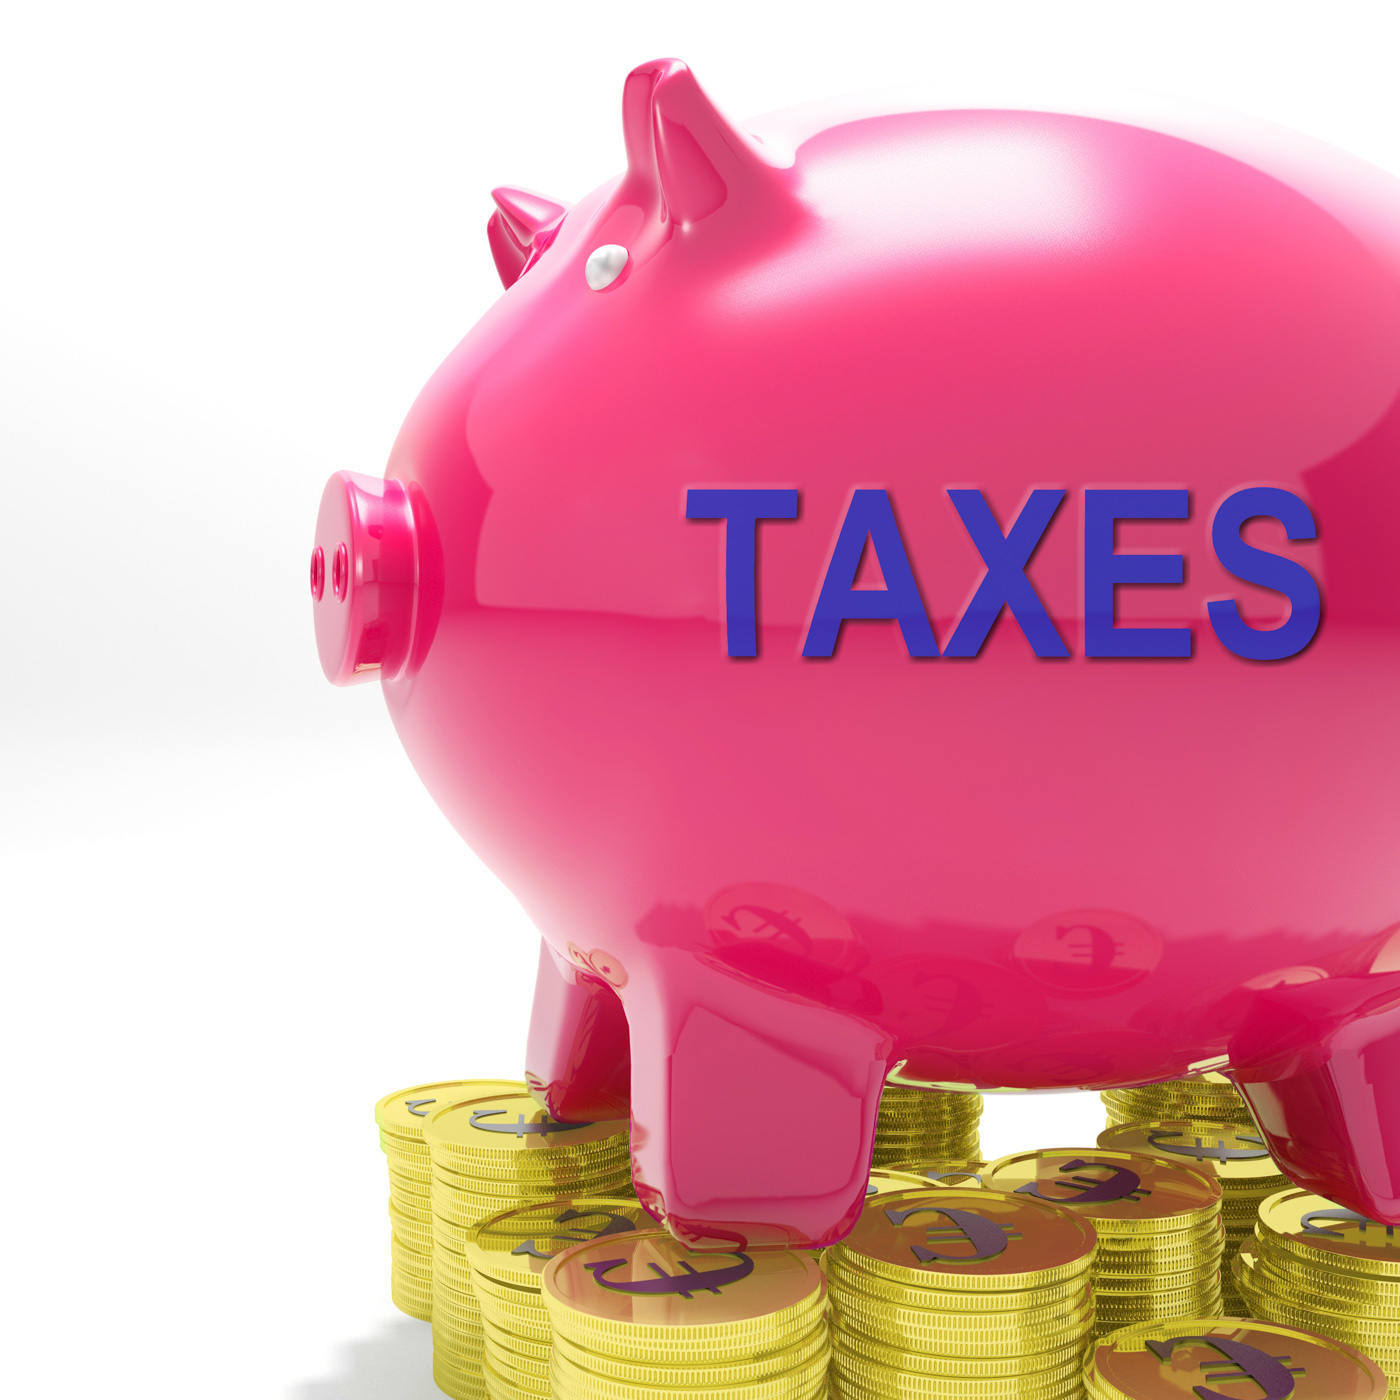 Taxes piggy bank means taxed income and tax rate photo